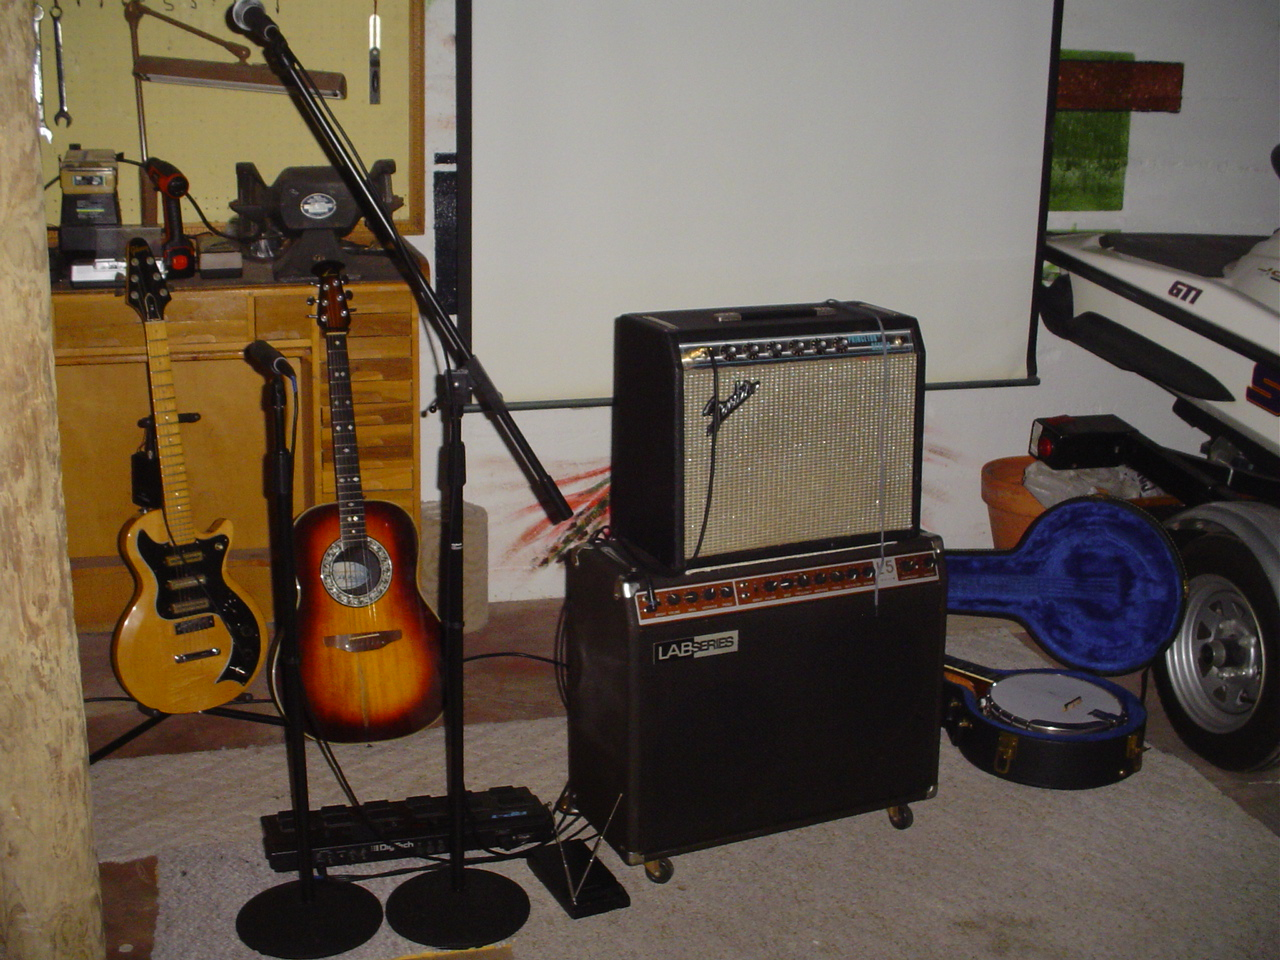 hight resolution of 1978 blond maple gibson s1 w audiotechnica wireless transmitter 1978 ovation balladeer 1111 acoustic 1989 gibson rb 250 banjo